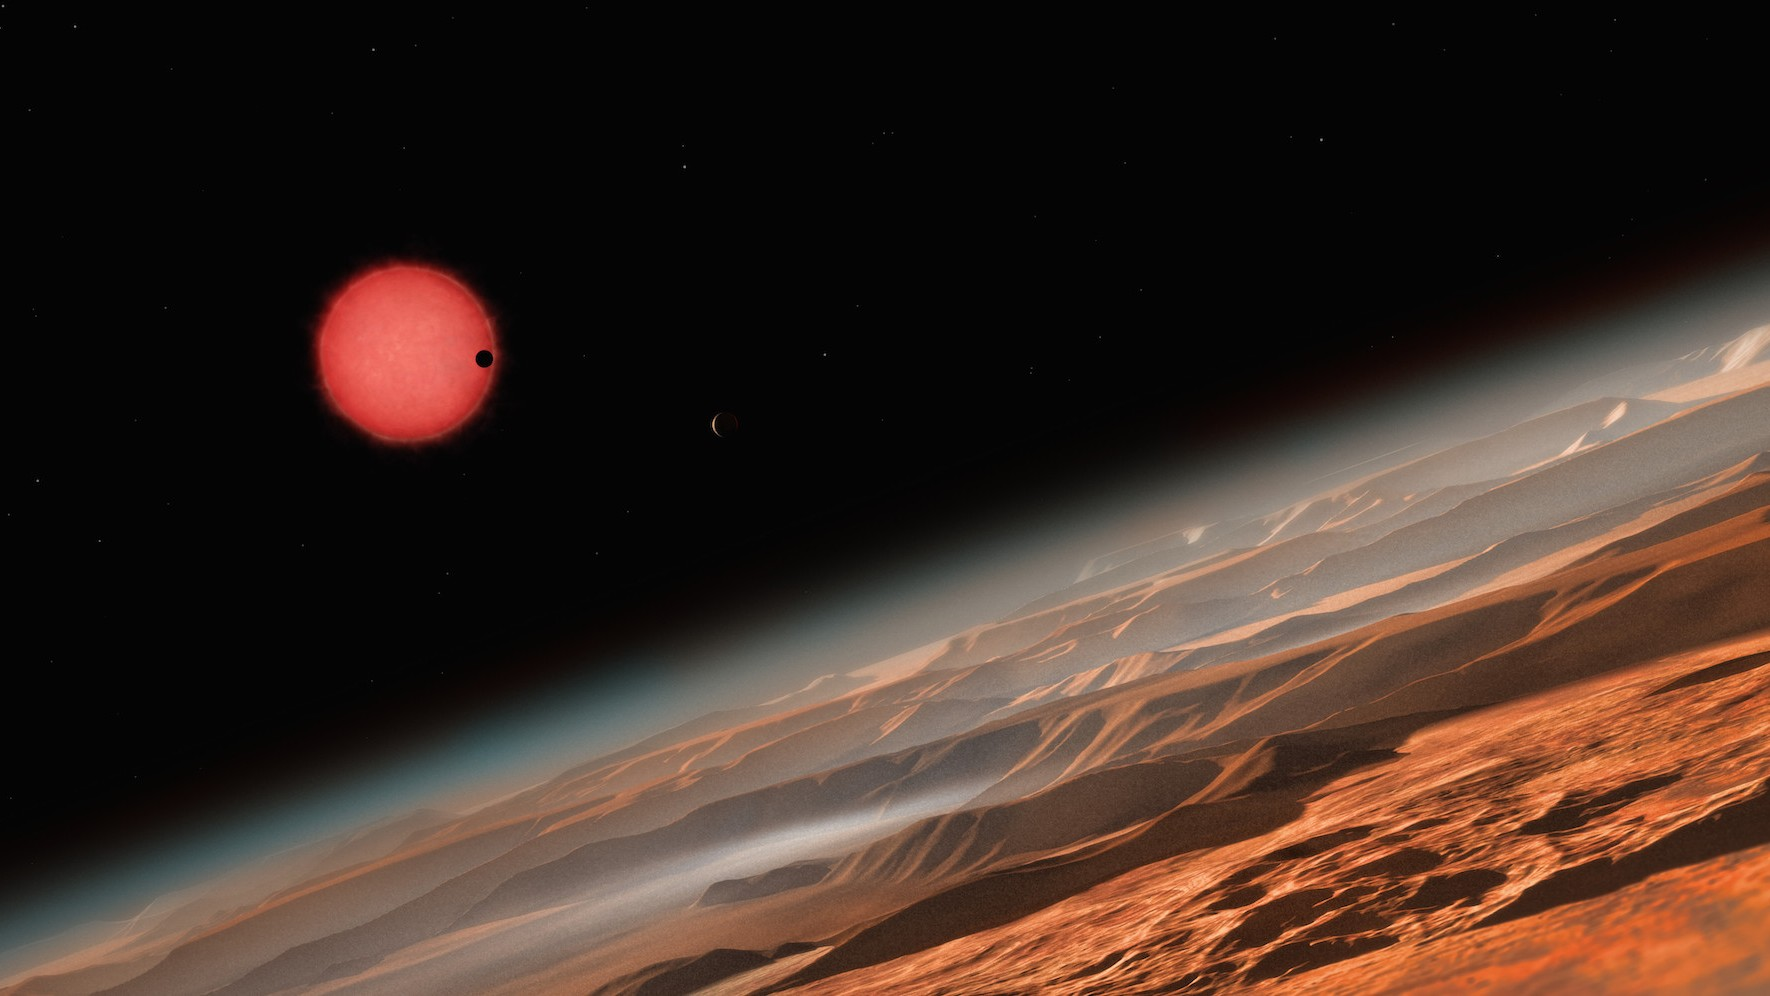 three potentially habitable planets have been found in our cosmic